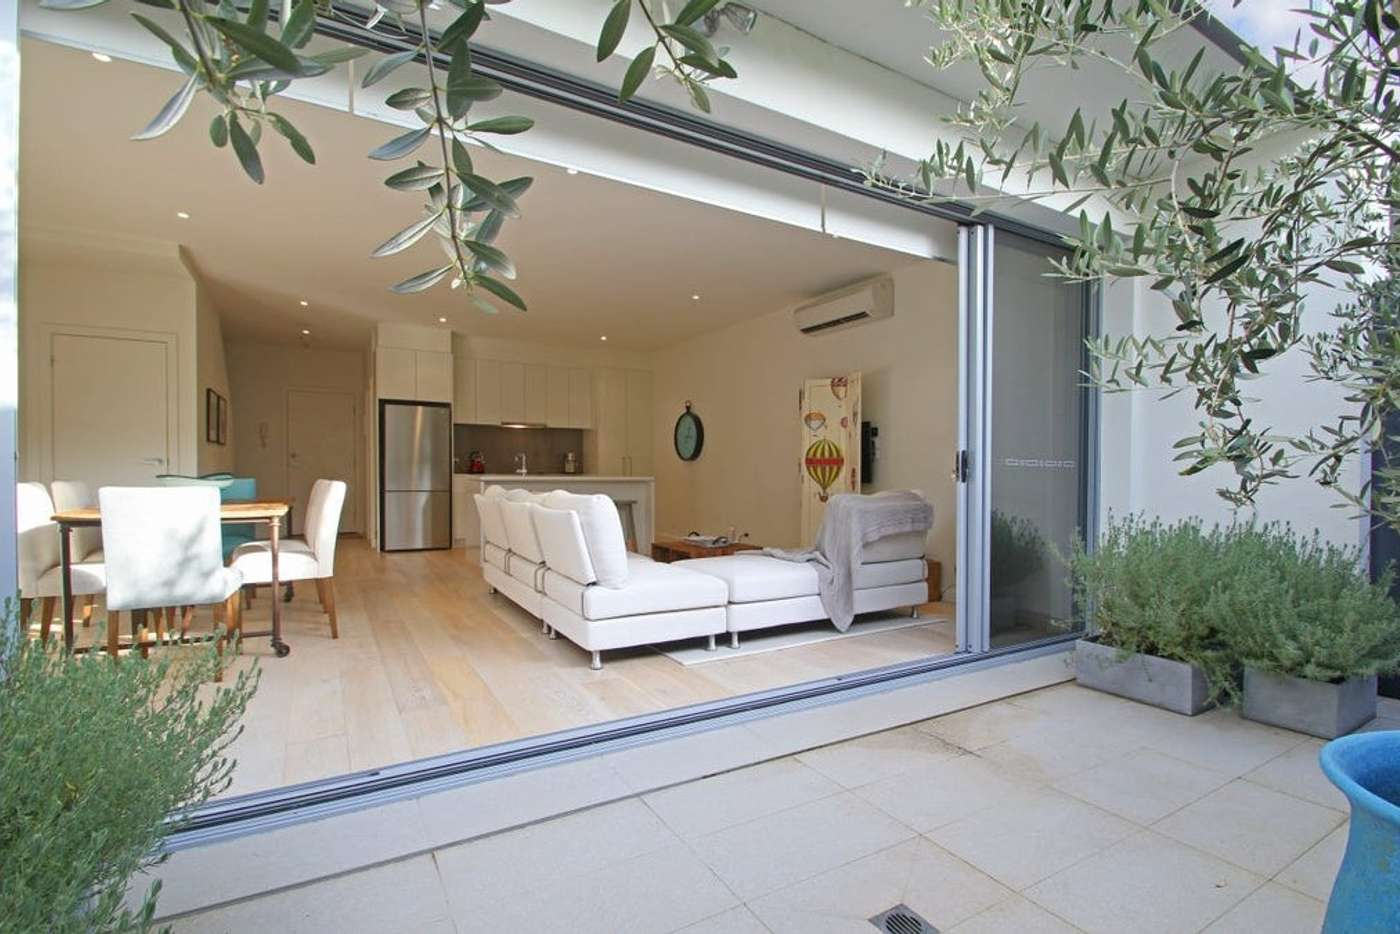 Main view of Homely townhouse listing, 4/5 Swanston Street, Mentone VIC 3194